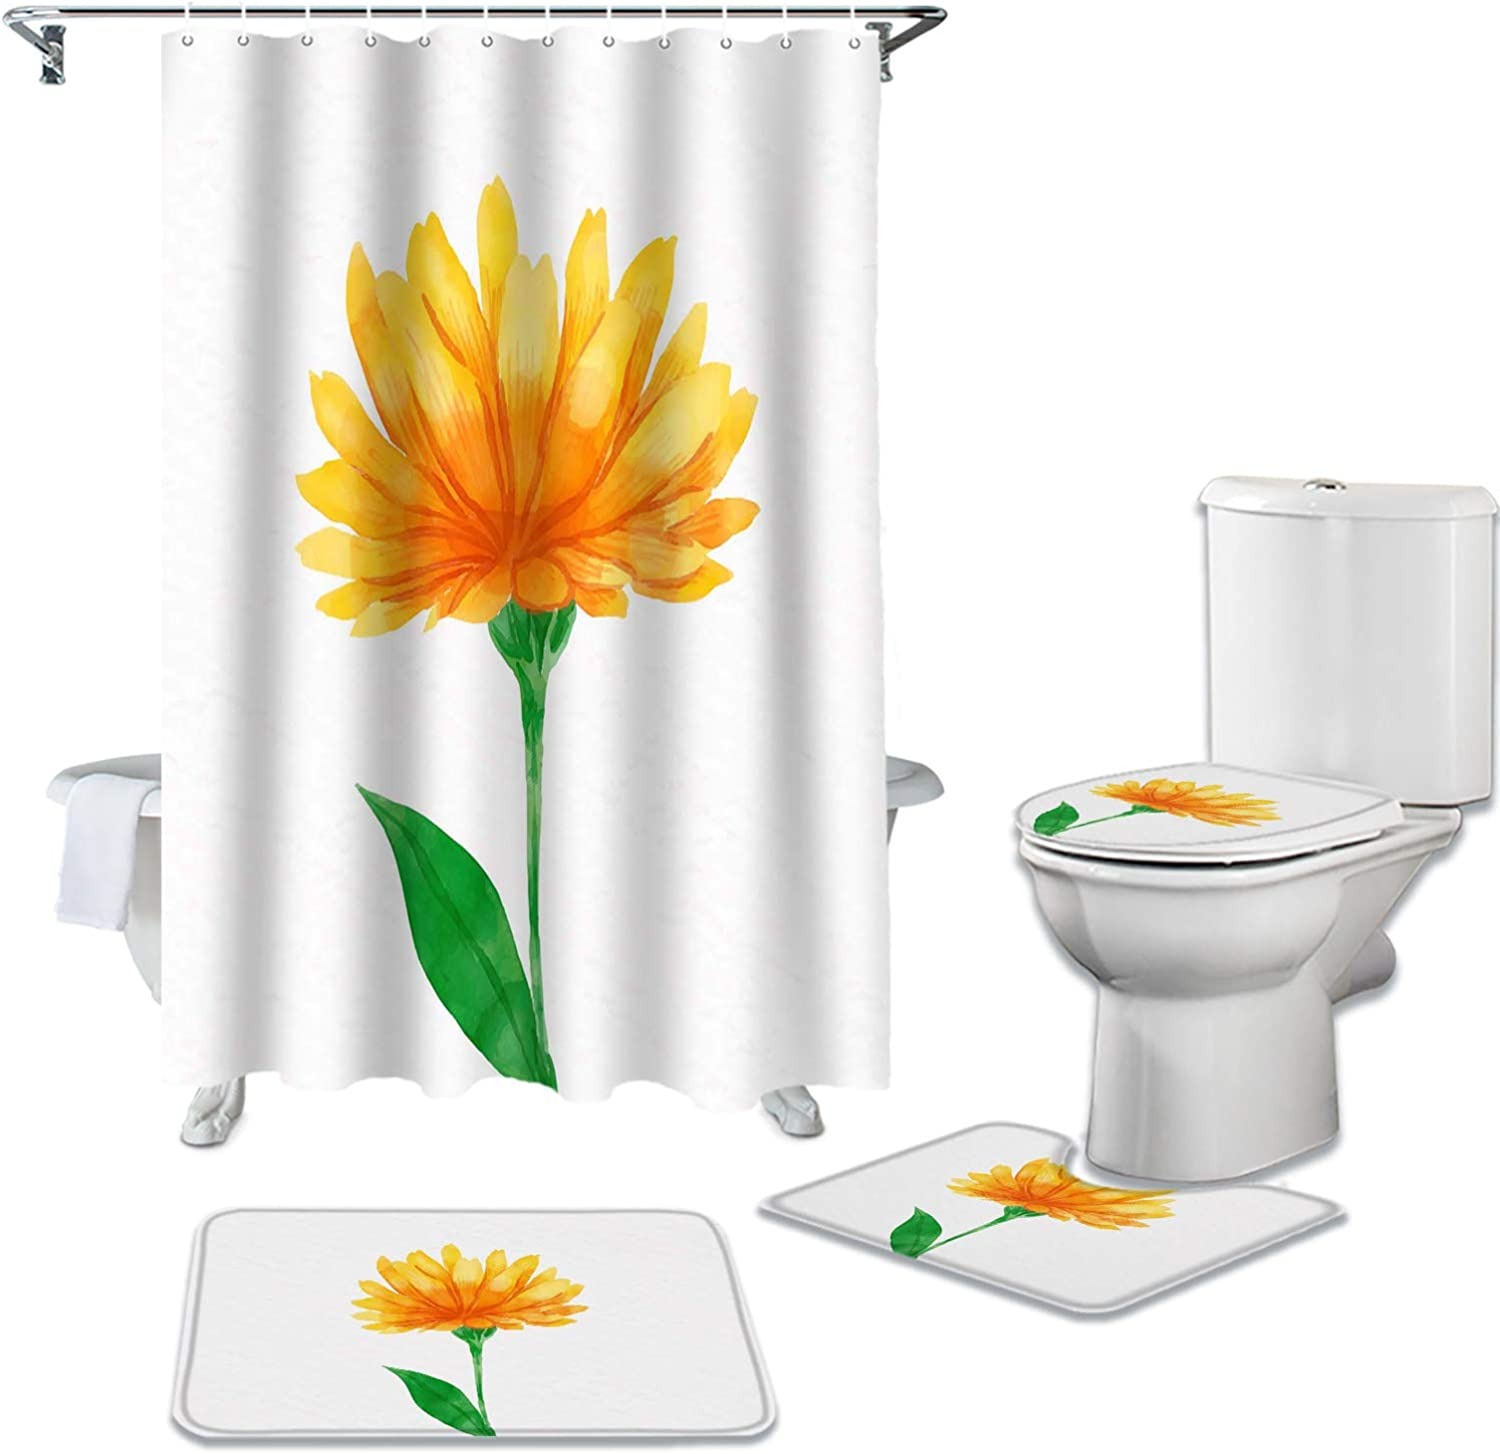 Brawvy 4 Pcs Shower Curtains Sets for Max 89% OFF 12 Gre with Bathroom Oklahoma City Mall Hooks